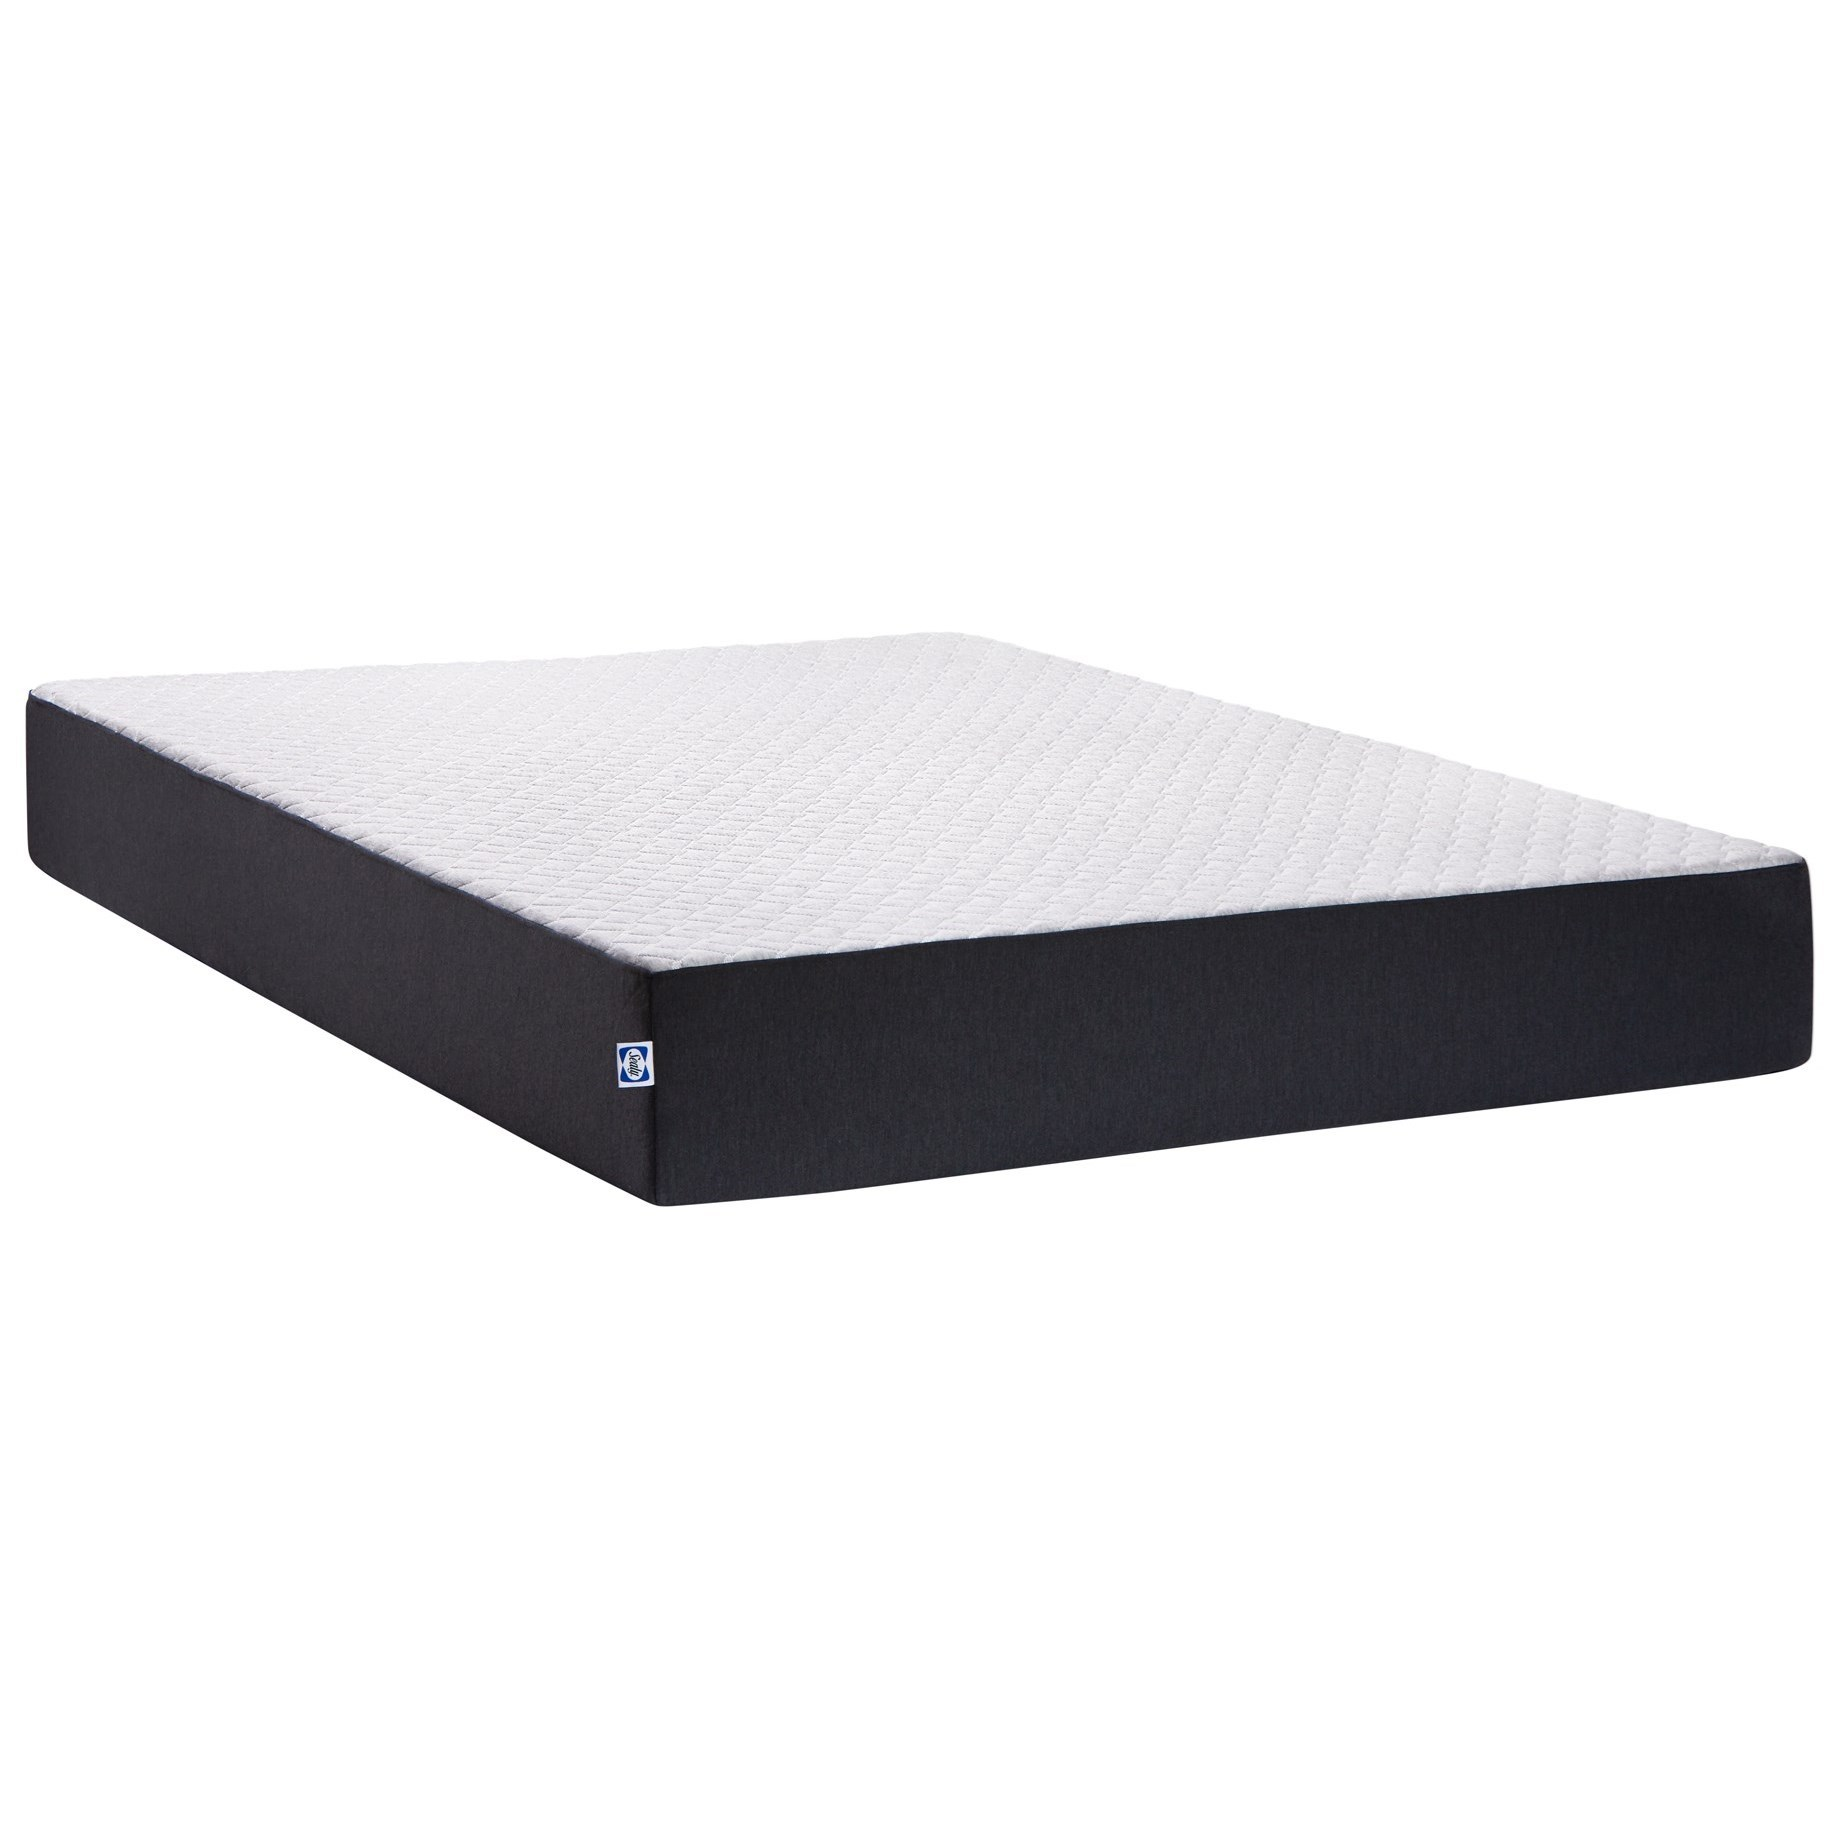 "Conform Essentials 10 BIB Twin 10"" Med Feel Memory Foam Mattress by Sealy at Novello Home Furnishings"